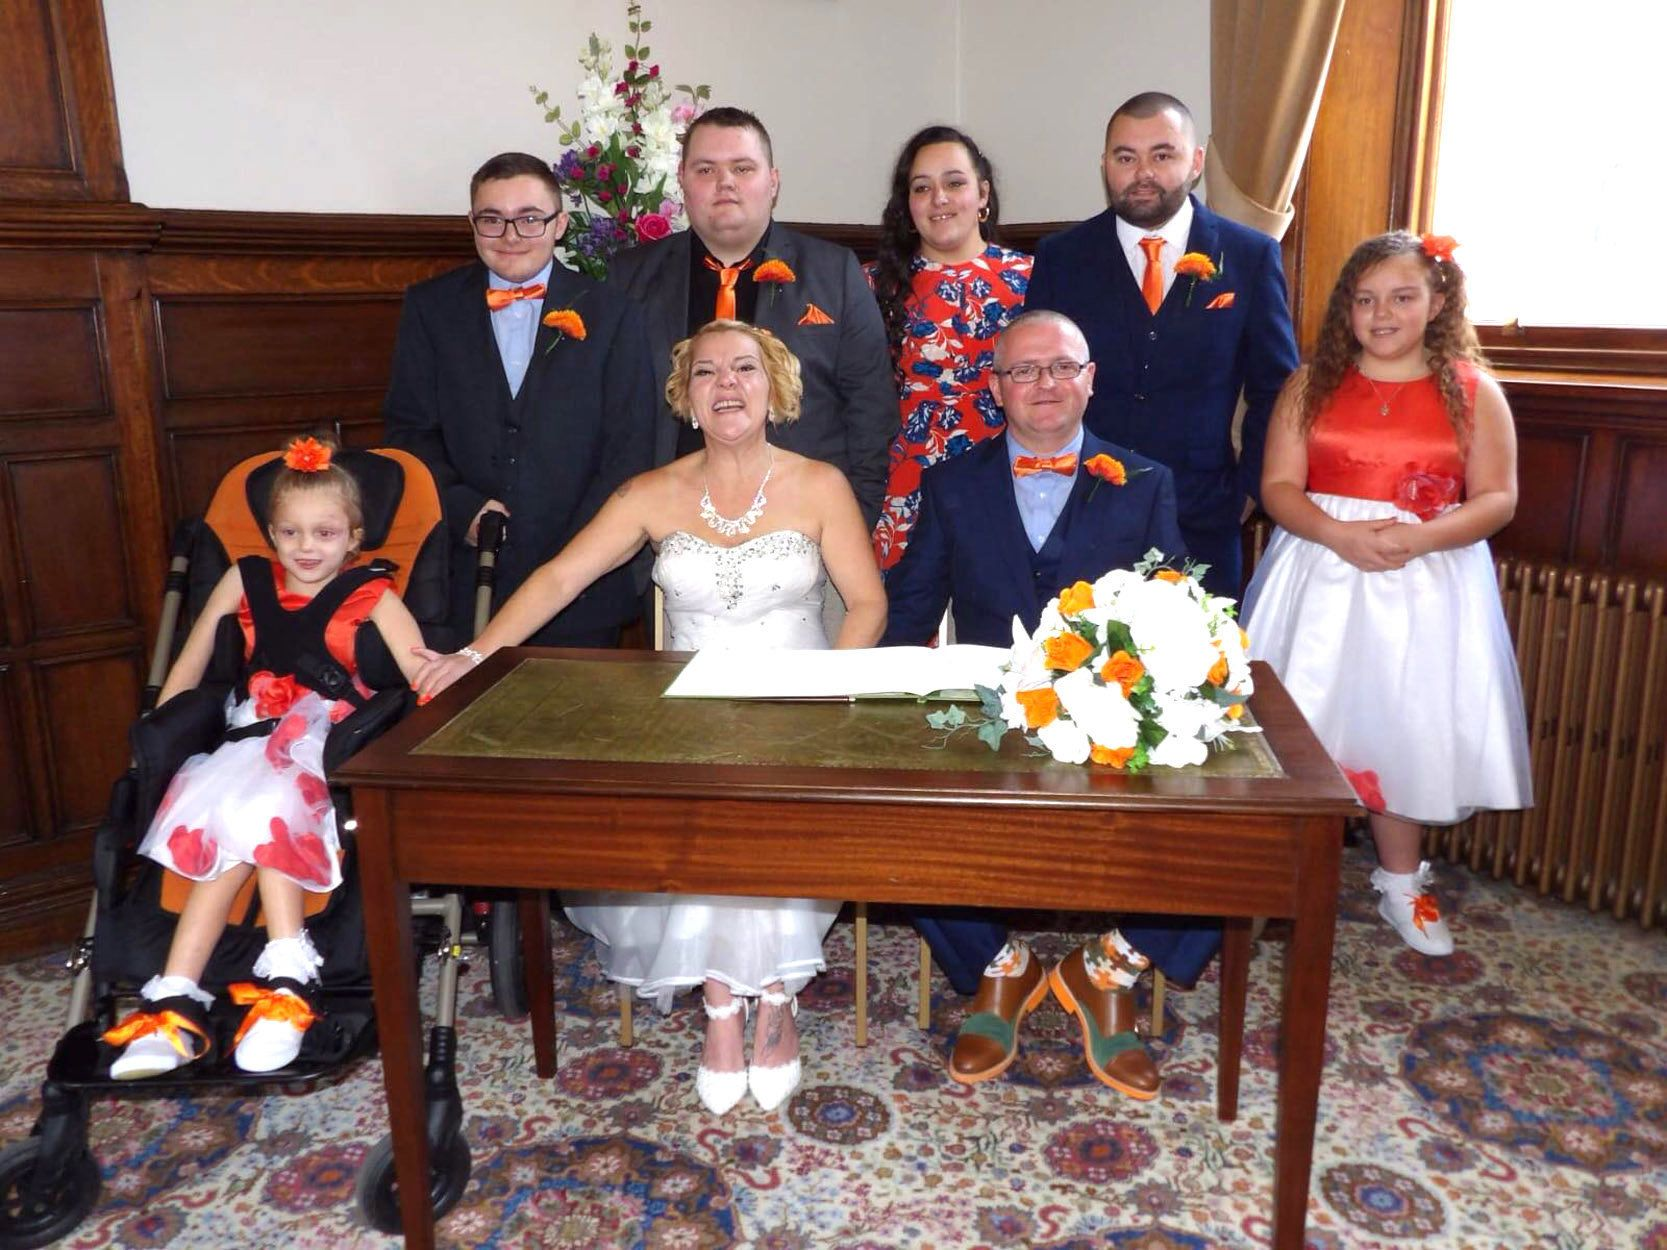 Bride Whose 6-Year-Old Daughter Has Dementia On Why She Got Married On Her